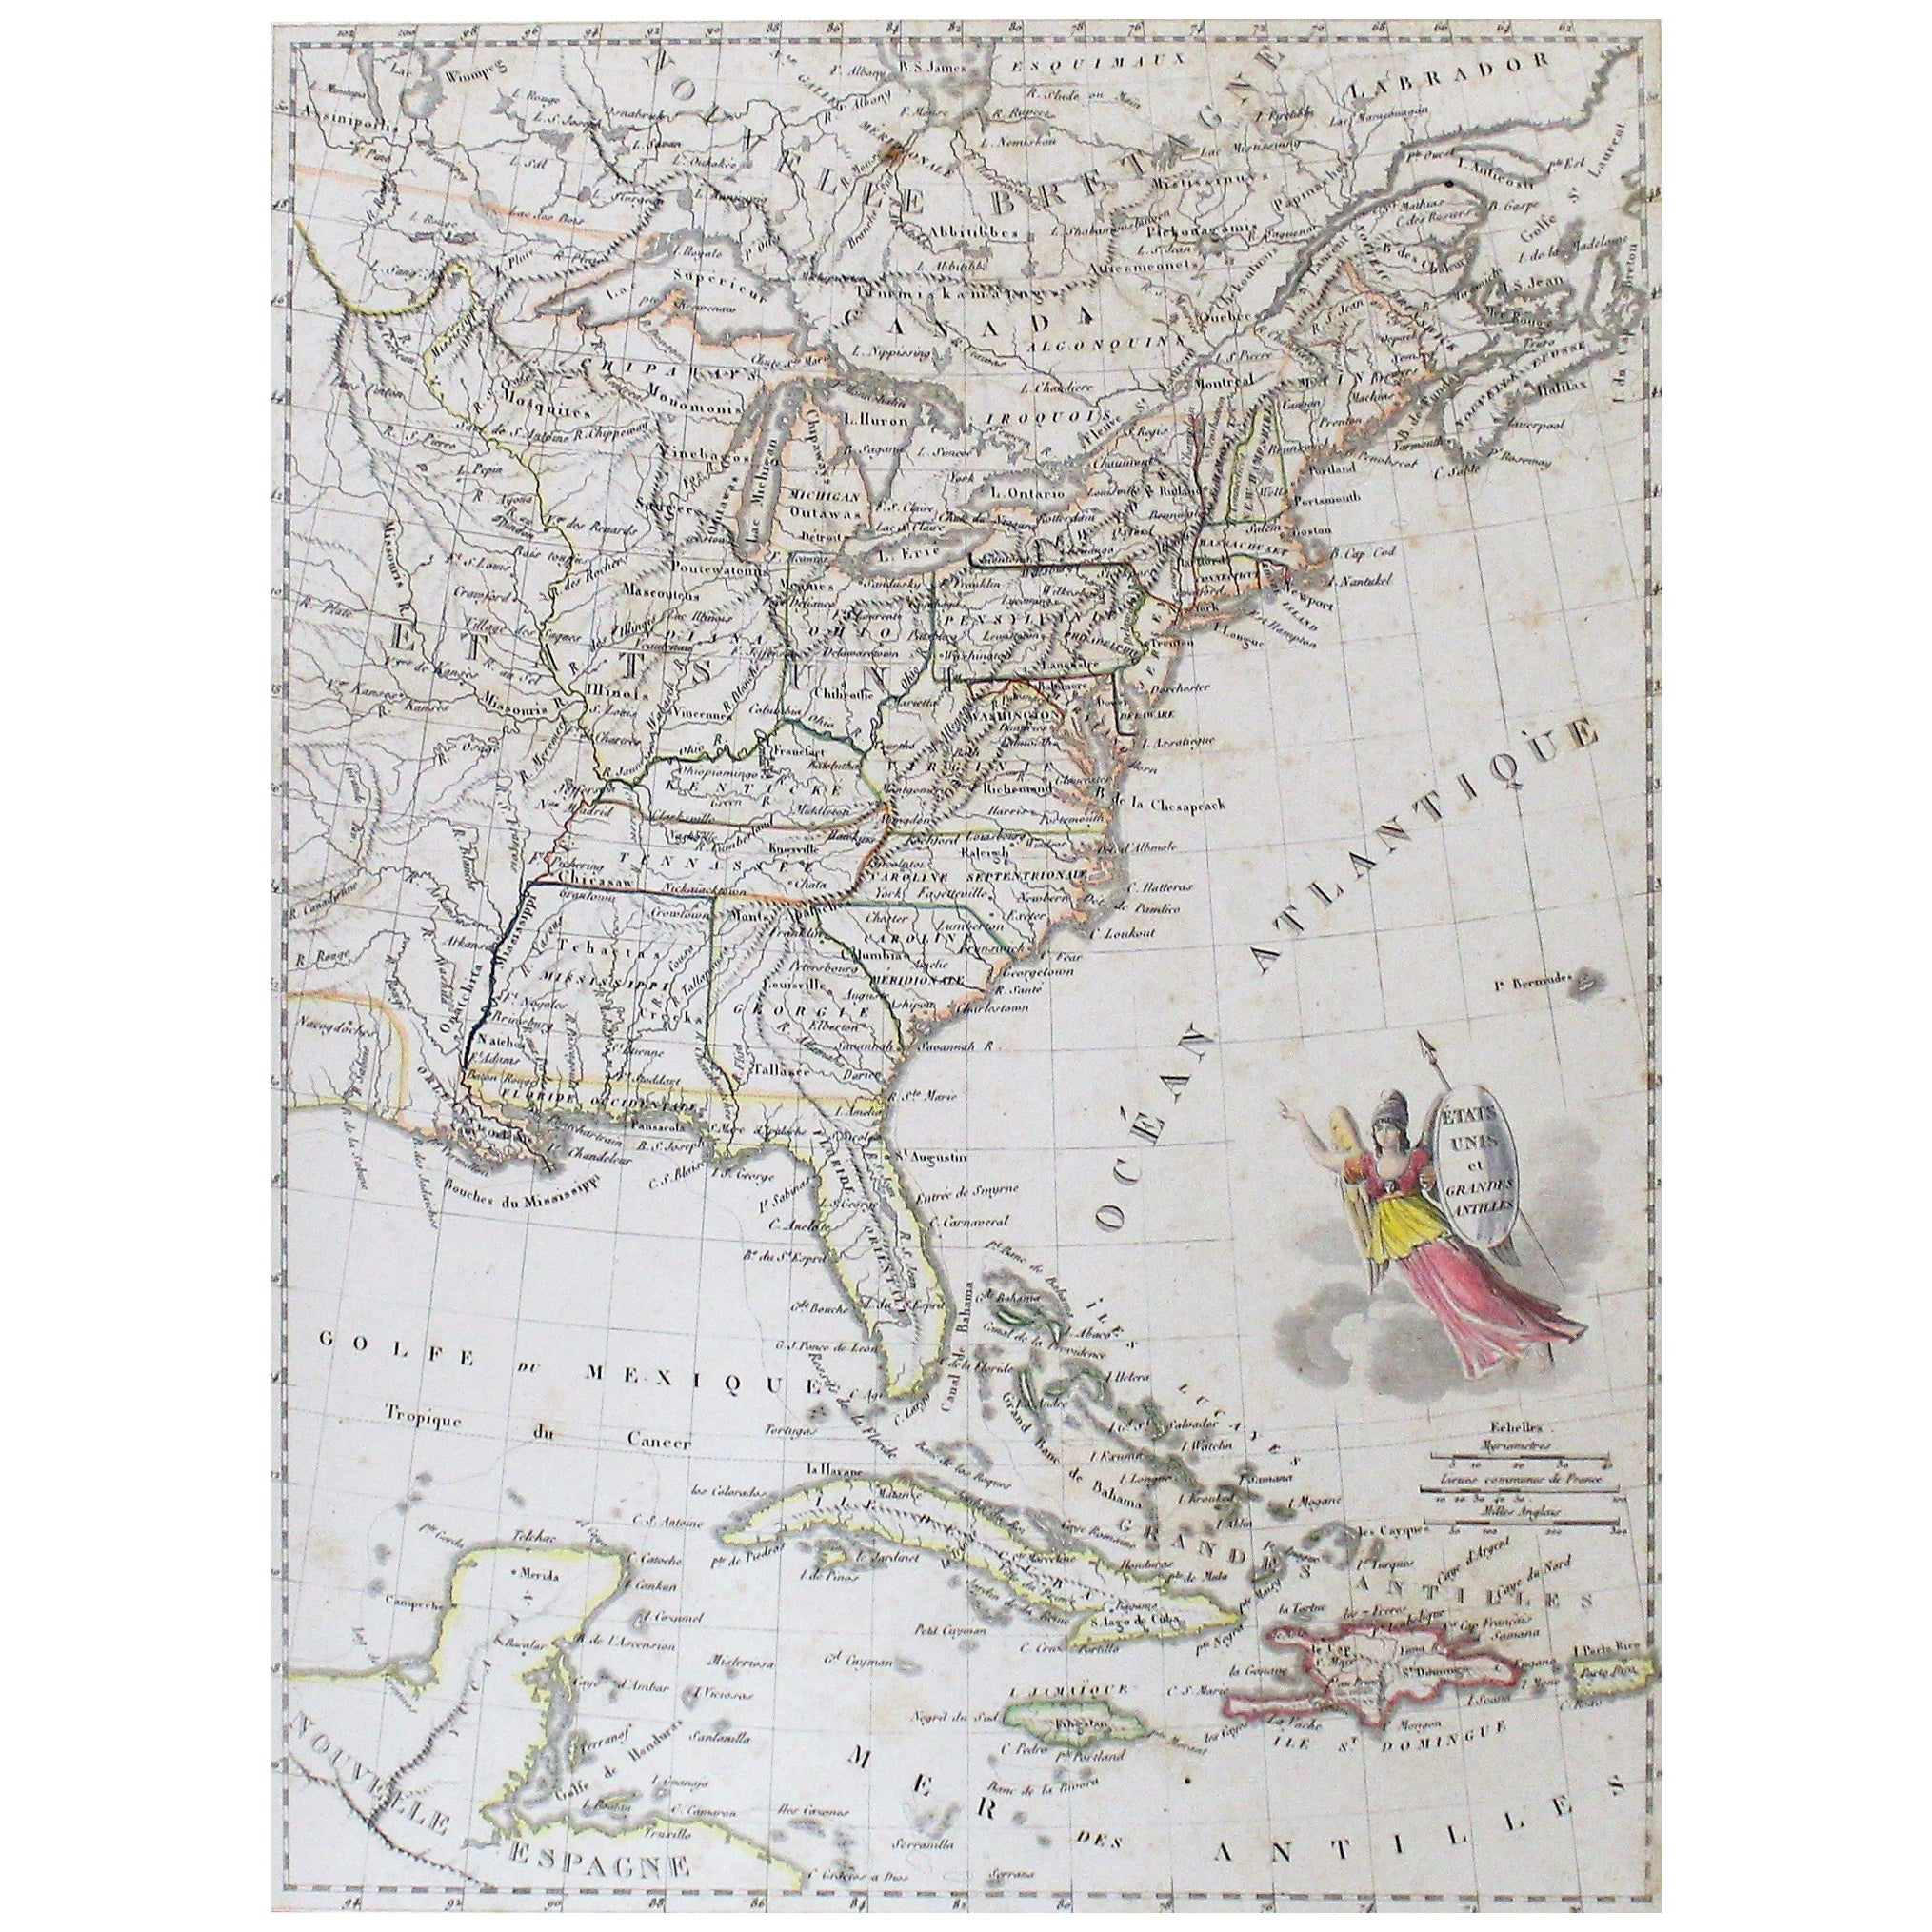 Early 19th Century Hand Colored Map of the United States and Caribbean Islands